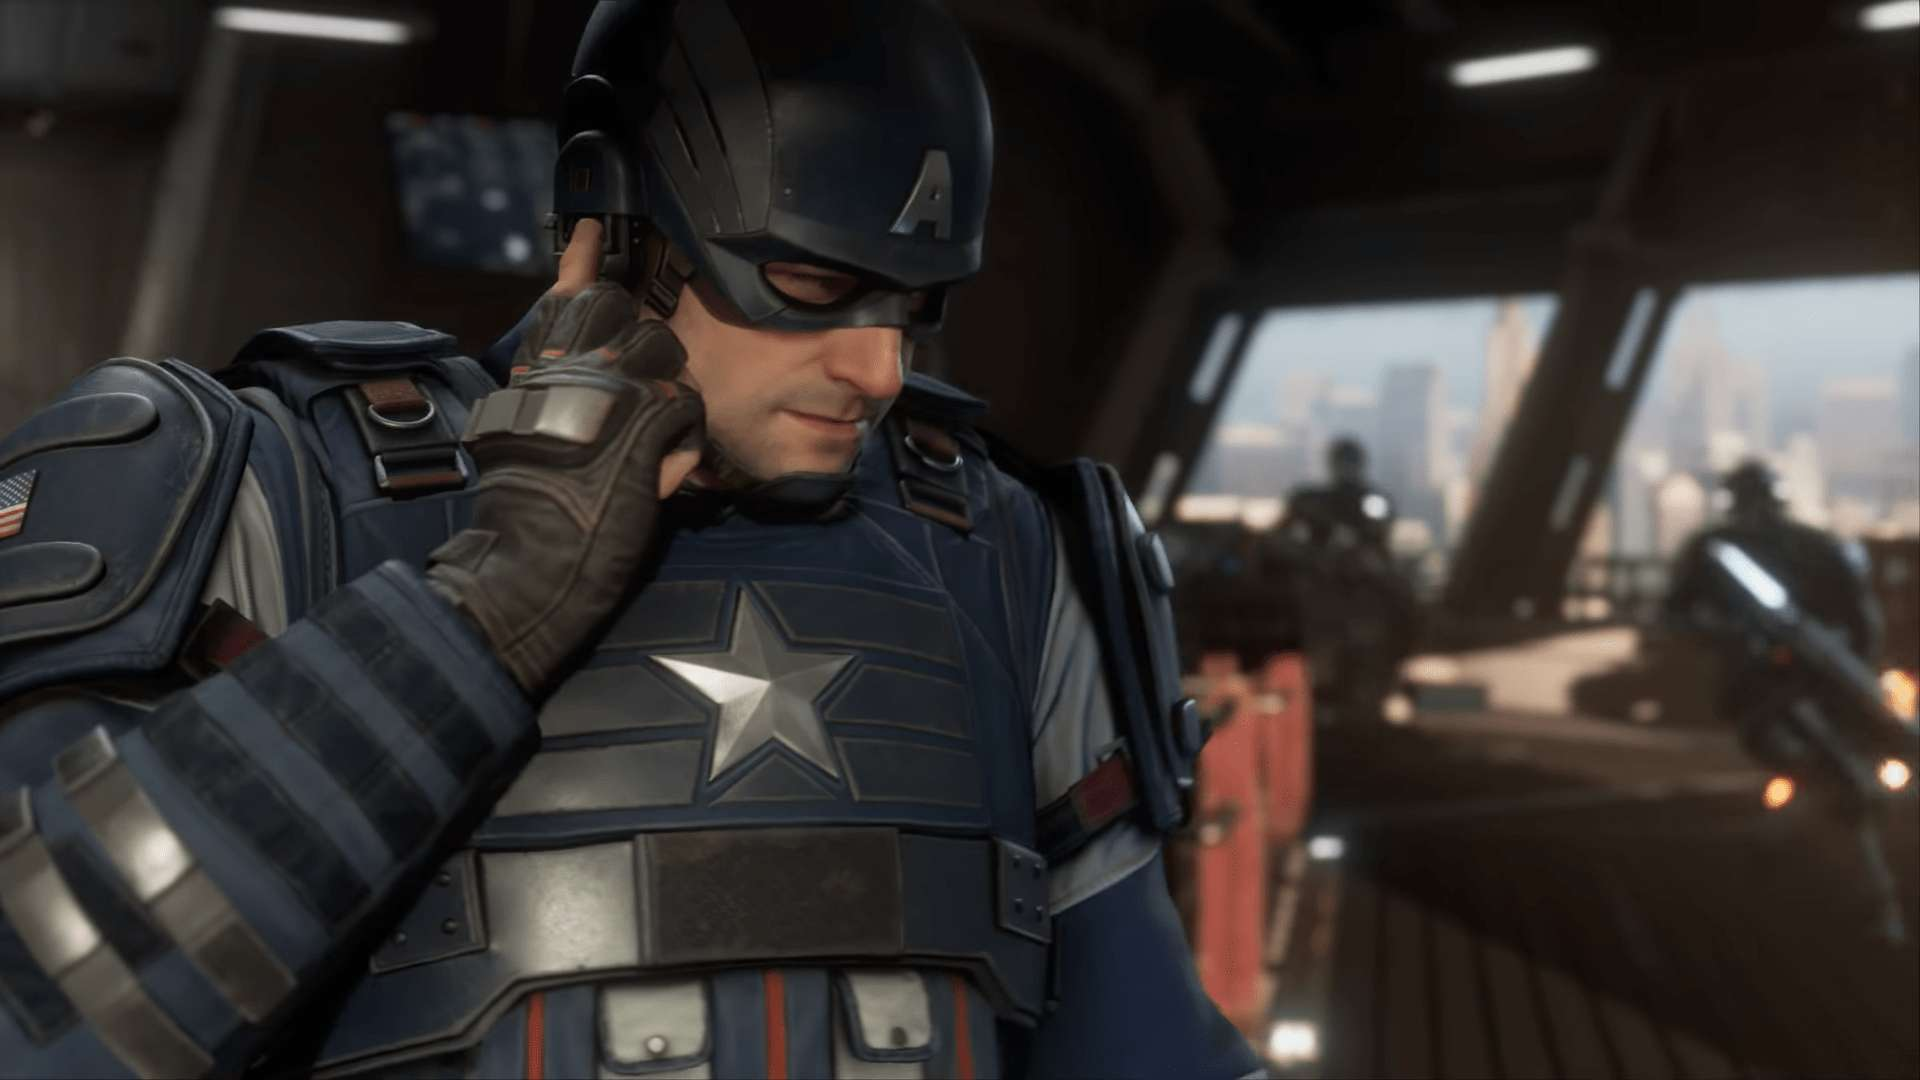 Marvel's Avengers Updates For The PlayStation 5 And Xbox Series X Have Been Delayed Into 2021